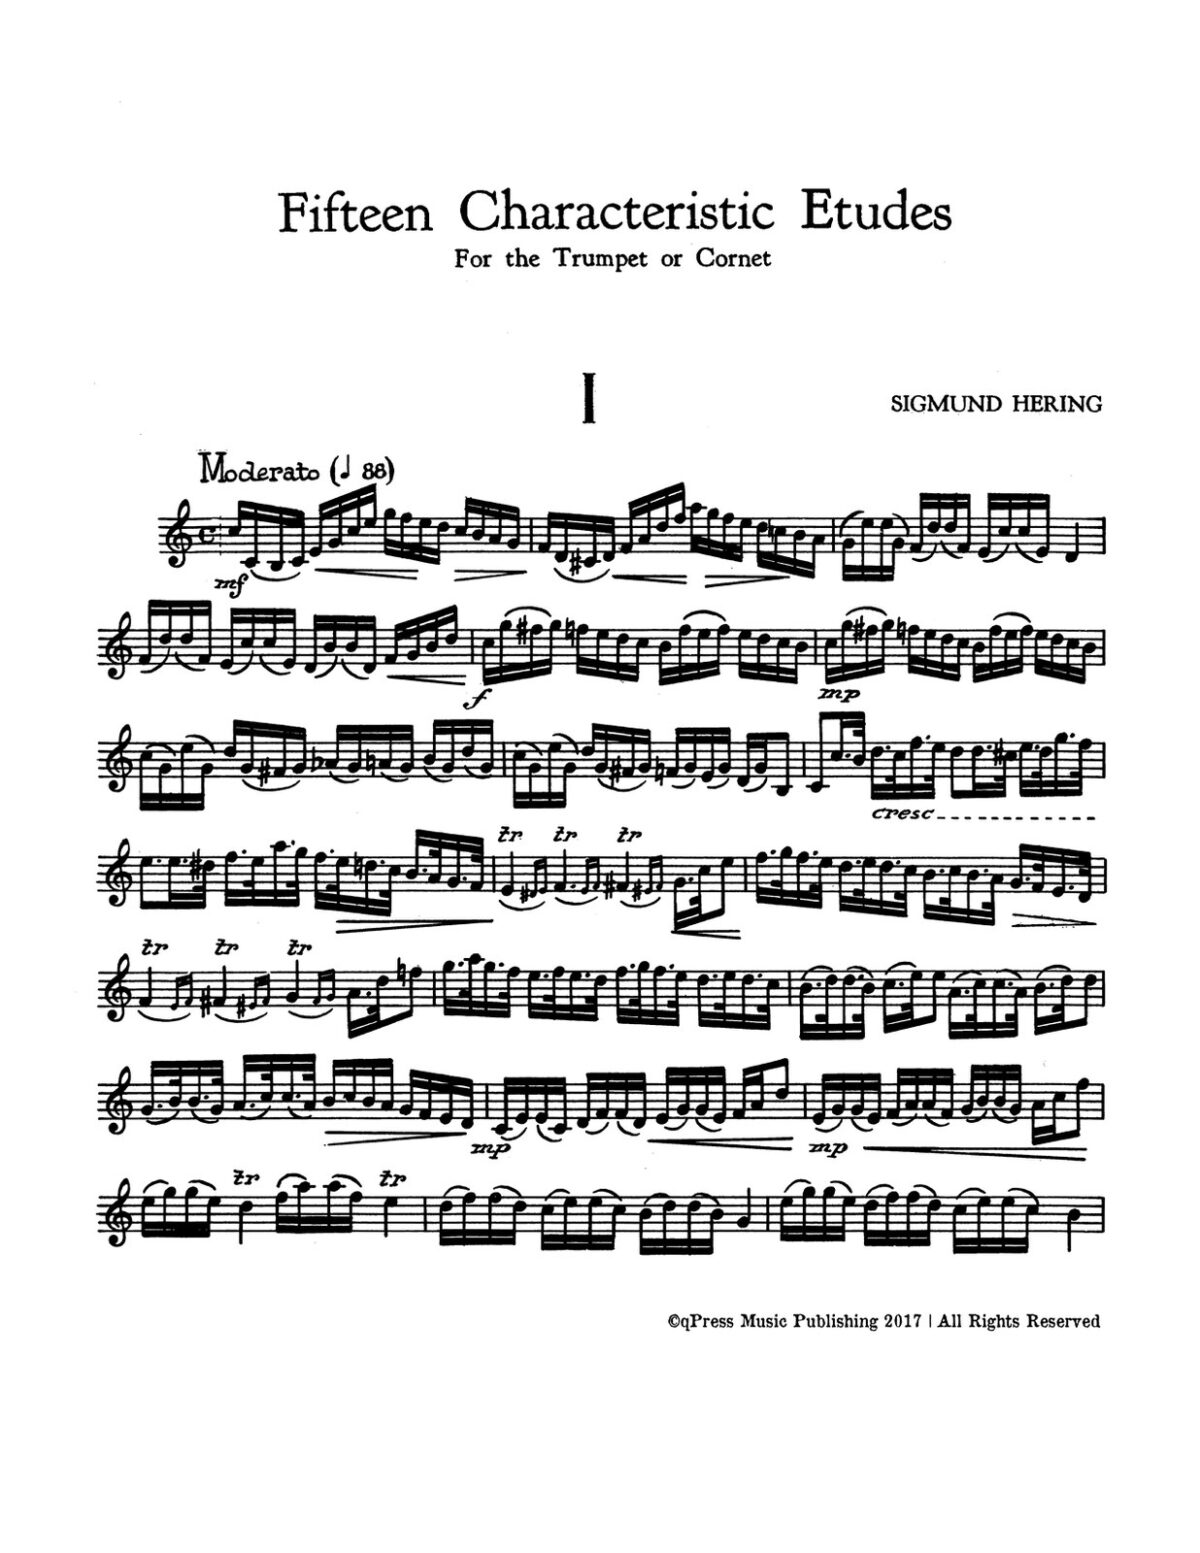 Hering, 15 Characteristic Etudes for Trumpet-p04